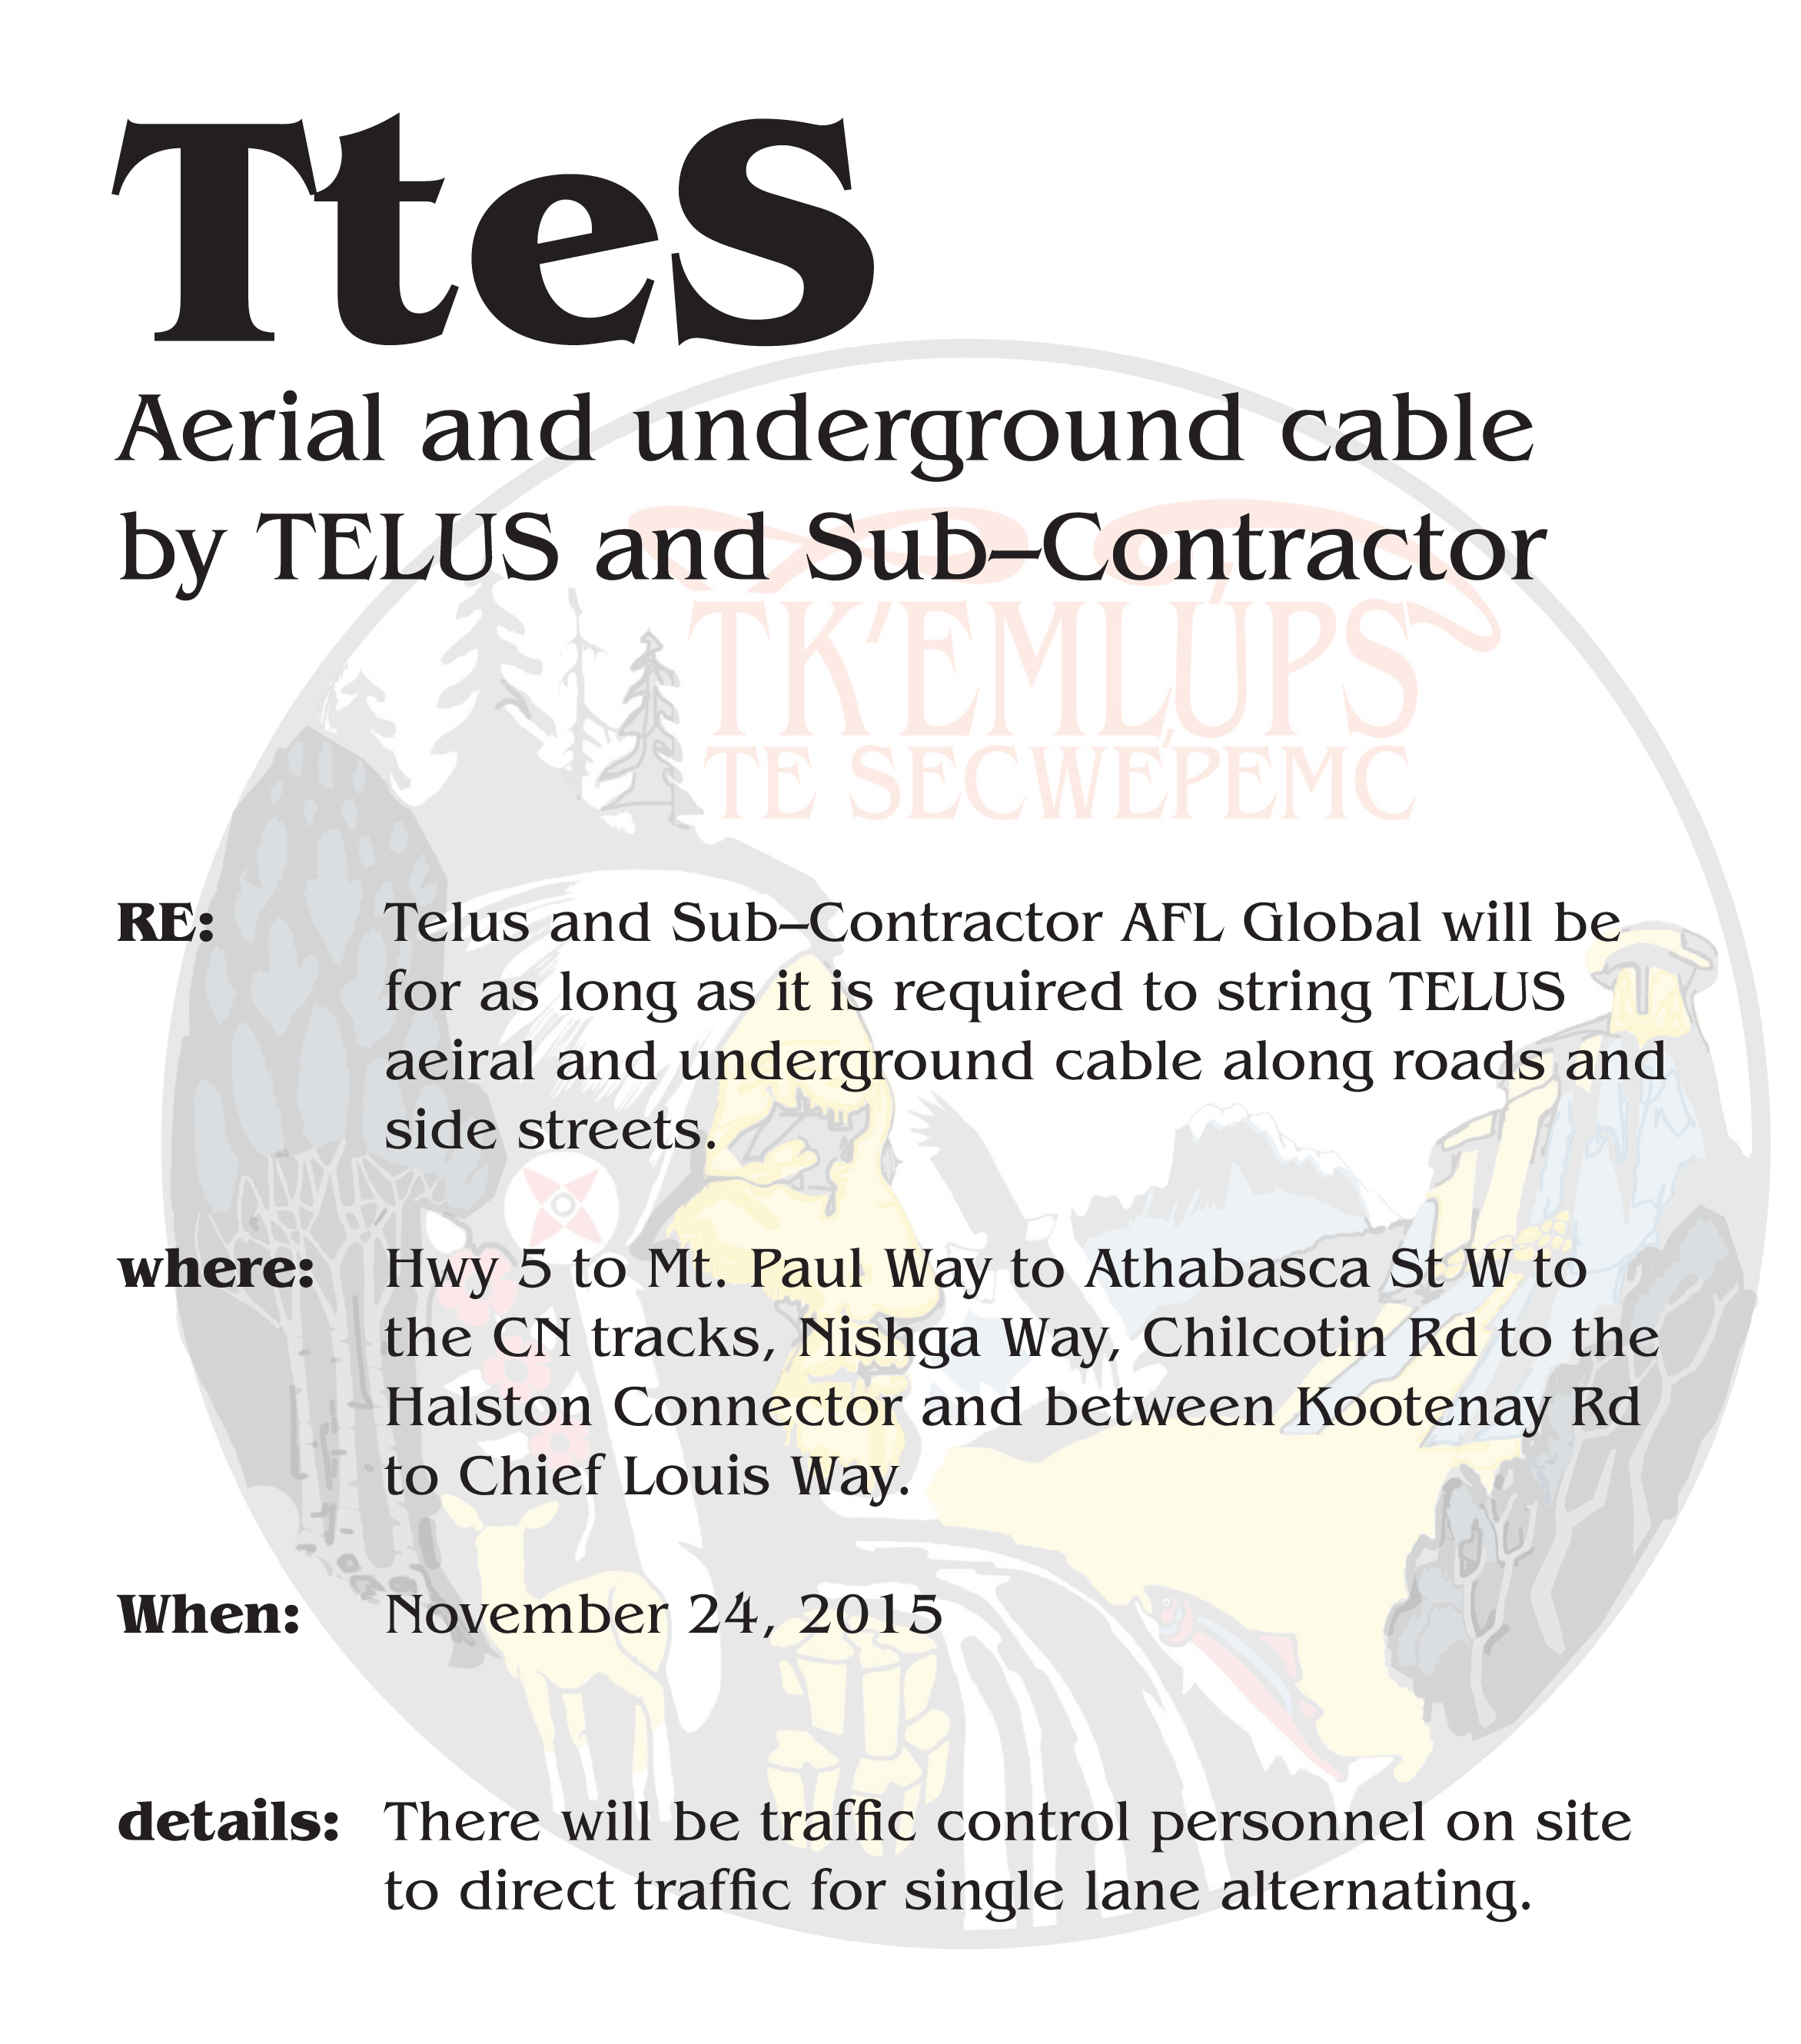 TteS-aerial-and-underground-cable